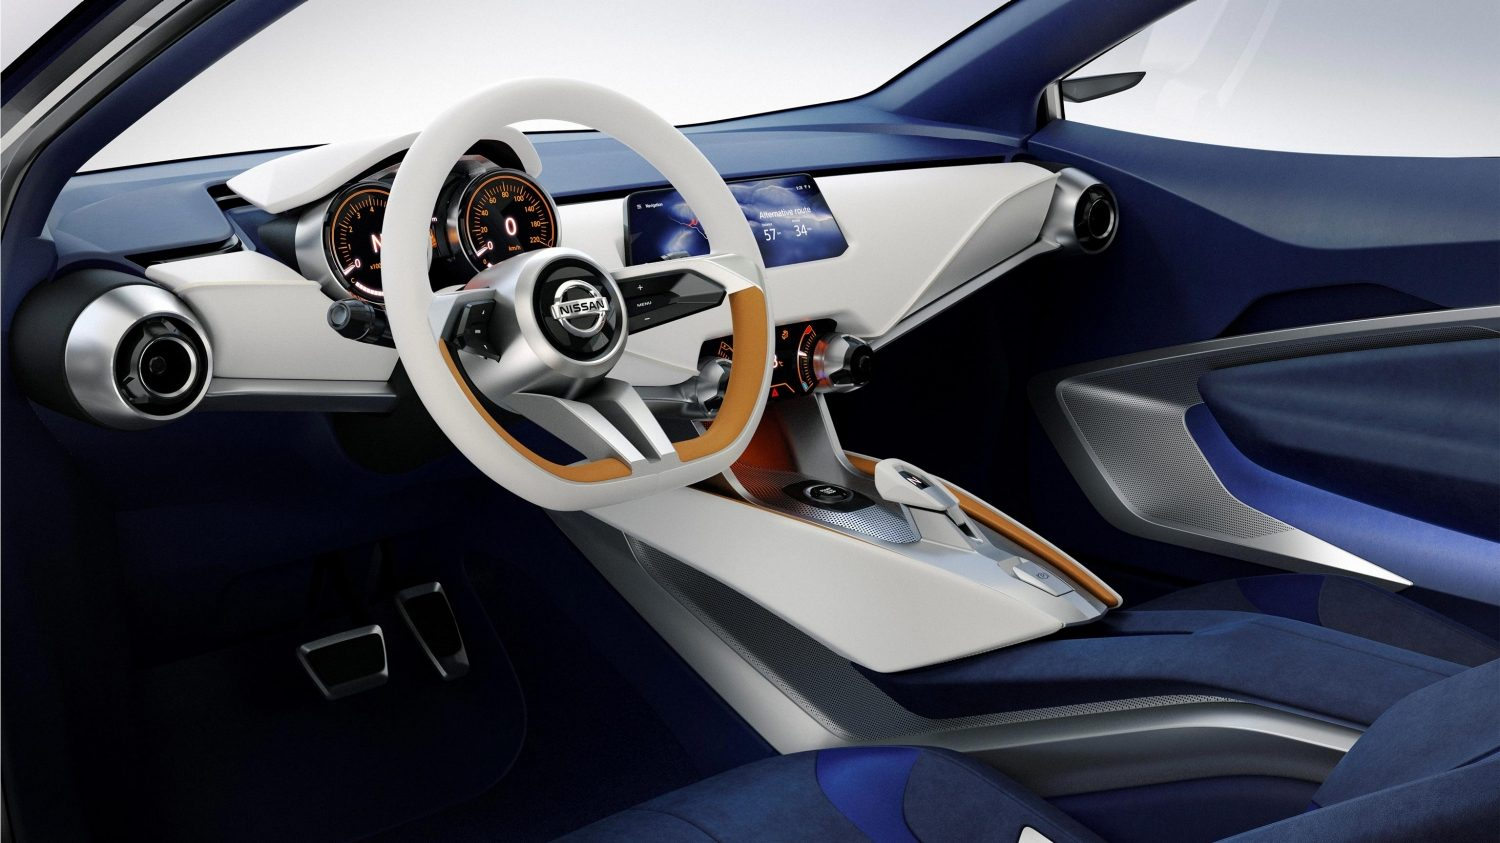 Experience Nissan - Concept car - Sway - interior view